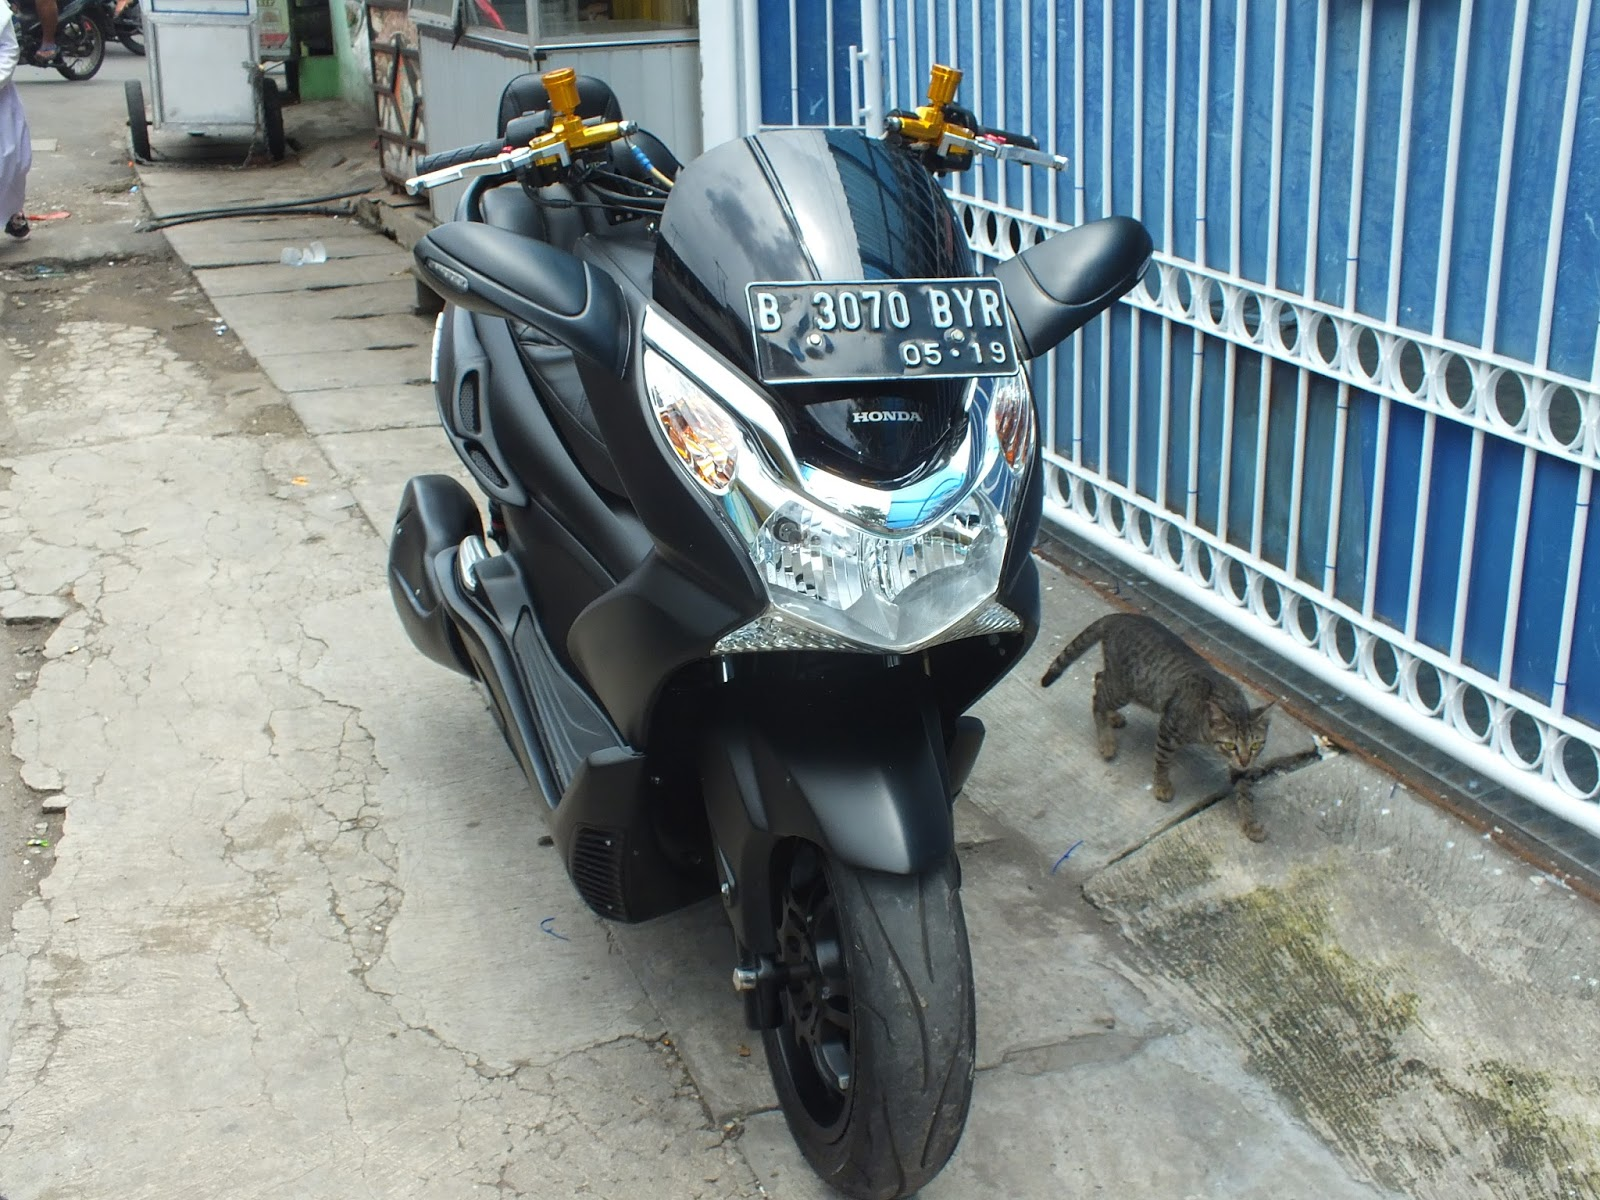 ford escape modifikasi html with Modifikasi Honda Pcx Doctor Matic Klinik Spesialis Motor on Offroad Touring Motorcycles also 1955 1st Series Vin Number in addition Marina Bay Sands Skypark Infinity Pool Escape With Style furthermore 1955 1st Series Vin Number further 595266 Velg Ford Fiesta.